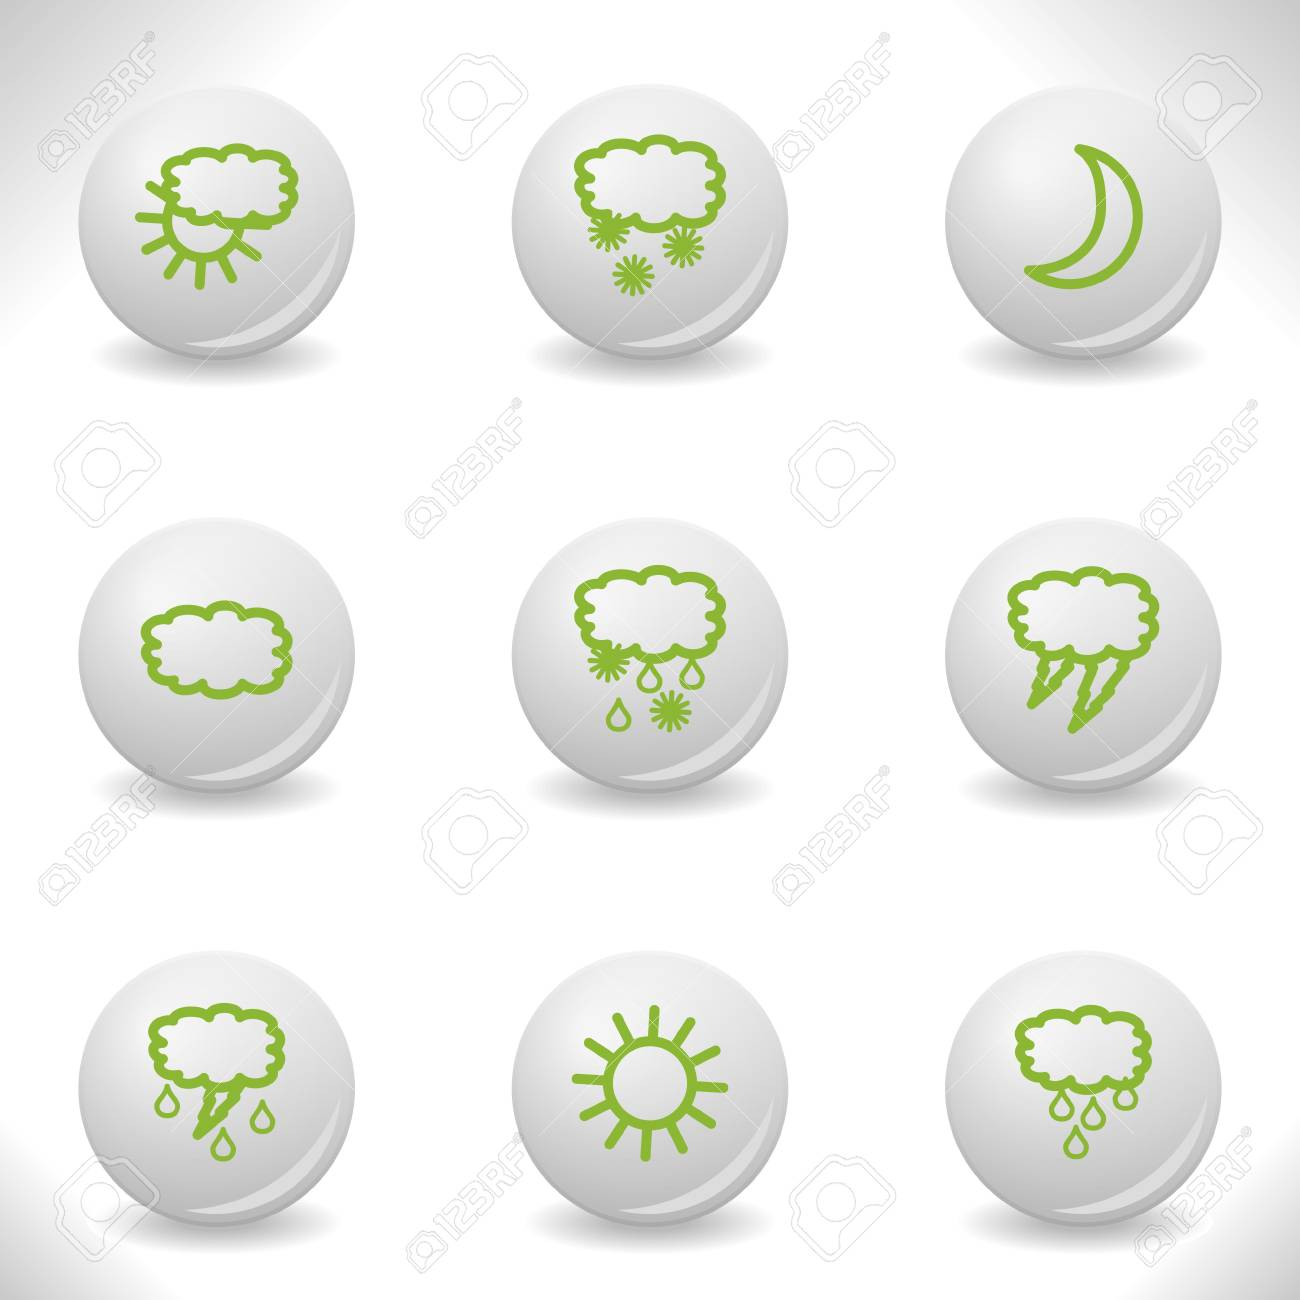 Grey balls with green icon and shadow (set 4). Stock Vector - 16876153